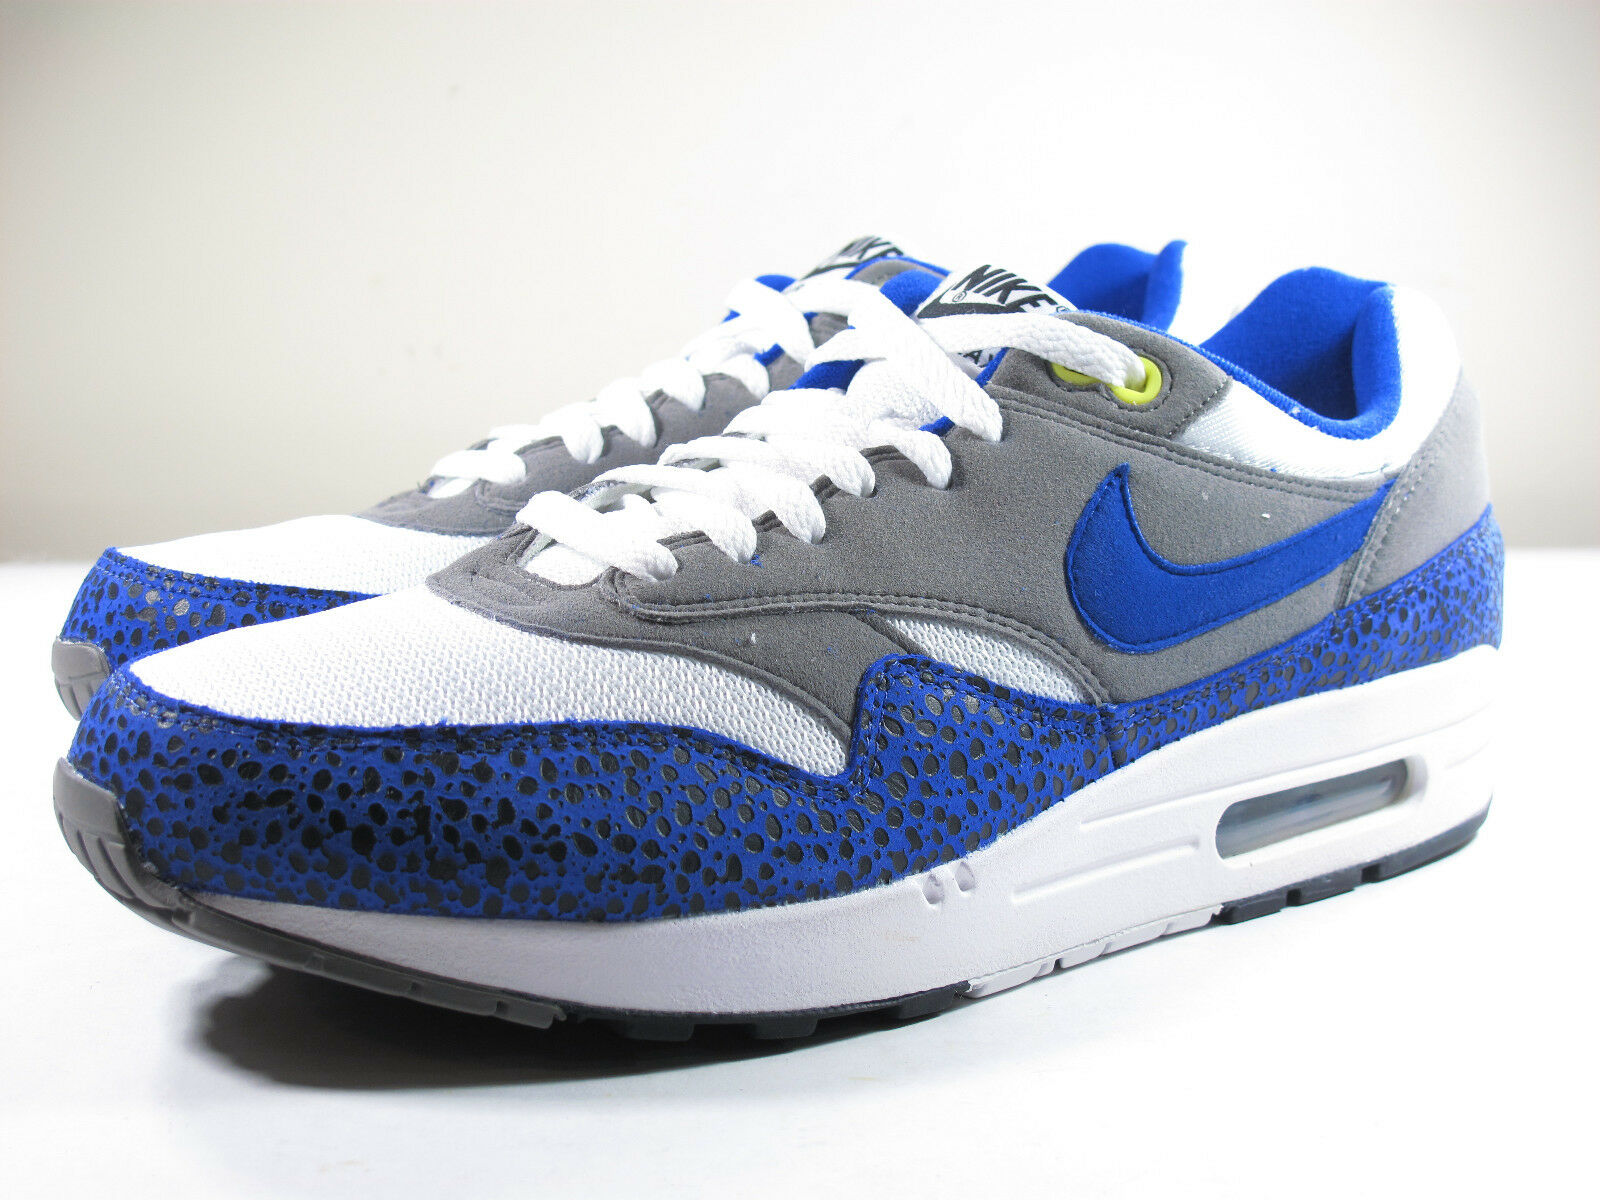 DS NIKE 2009 AIR MAX 1 SAFARI HYPER BLUE 7.5 ATMOS PATTA 180 90 SUPREME 93 CAMO